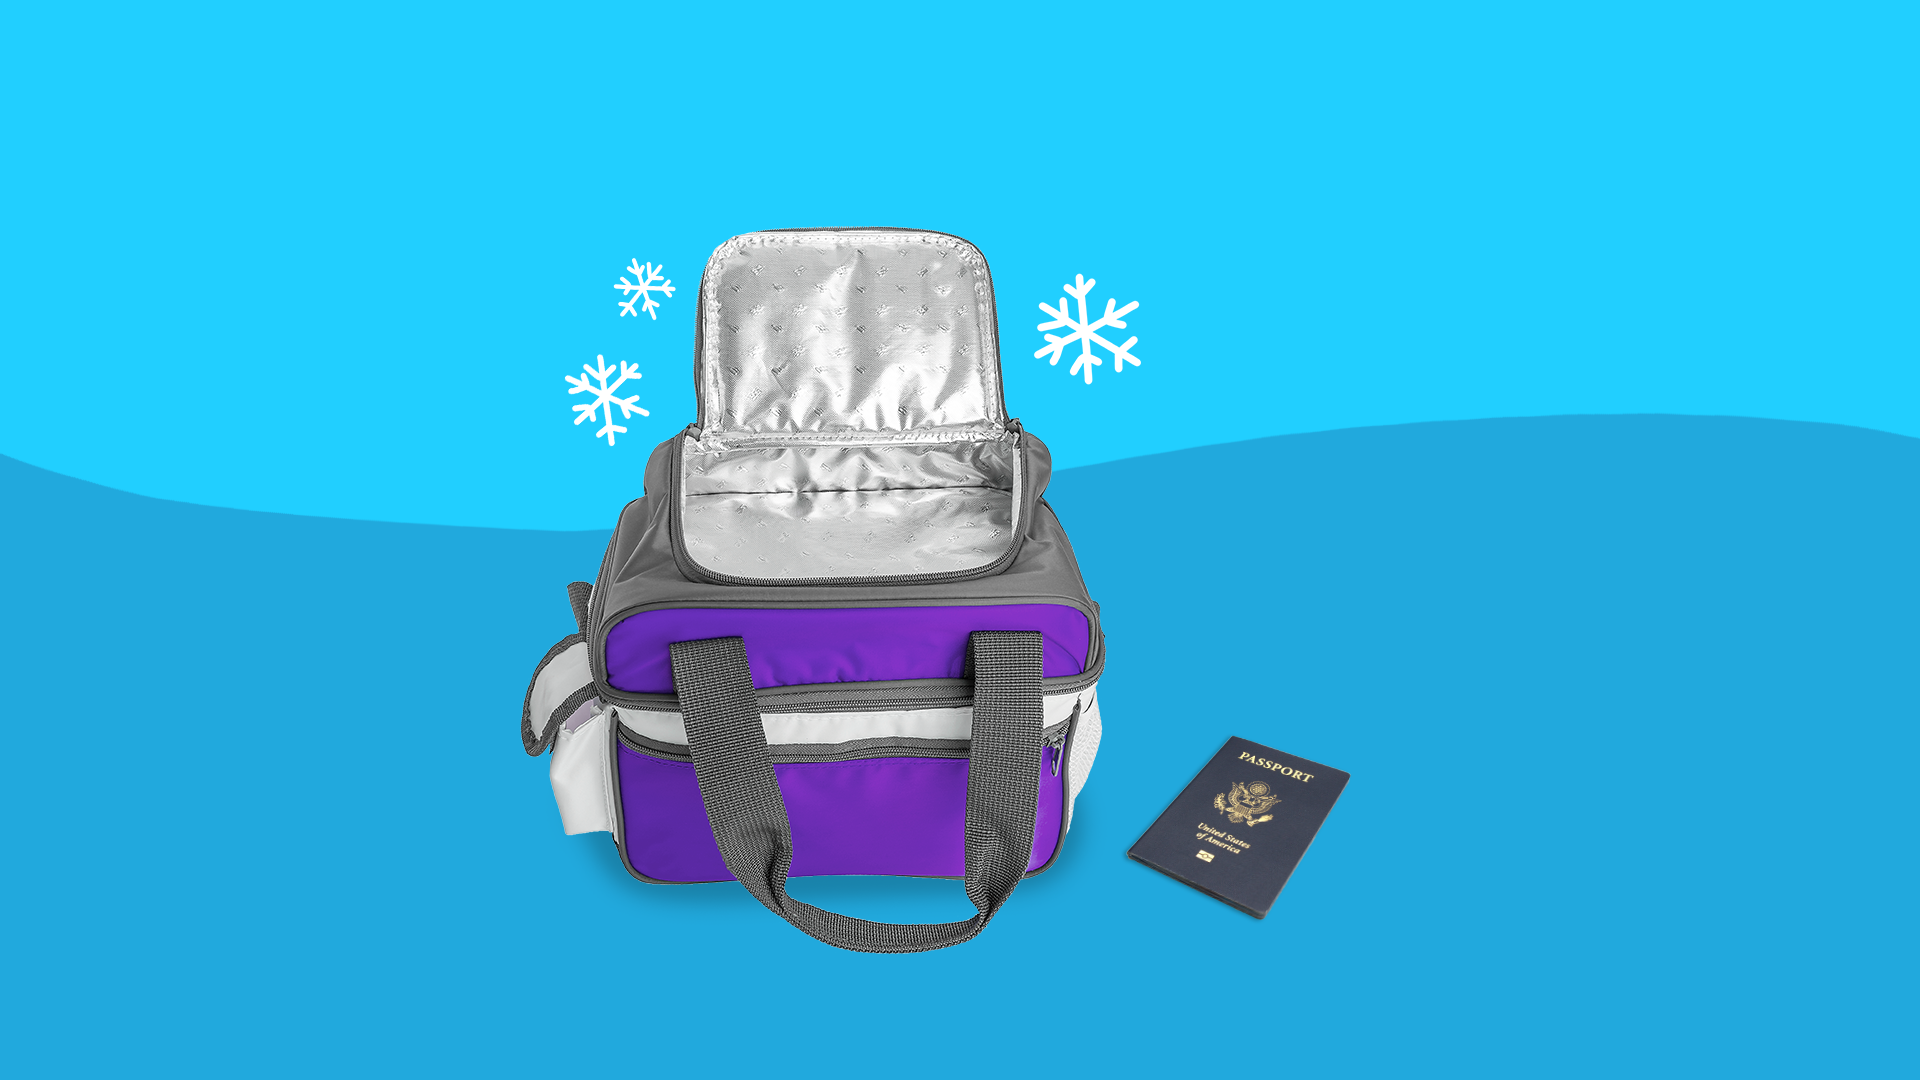 How to travel with refrigerated medications